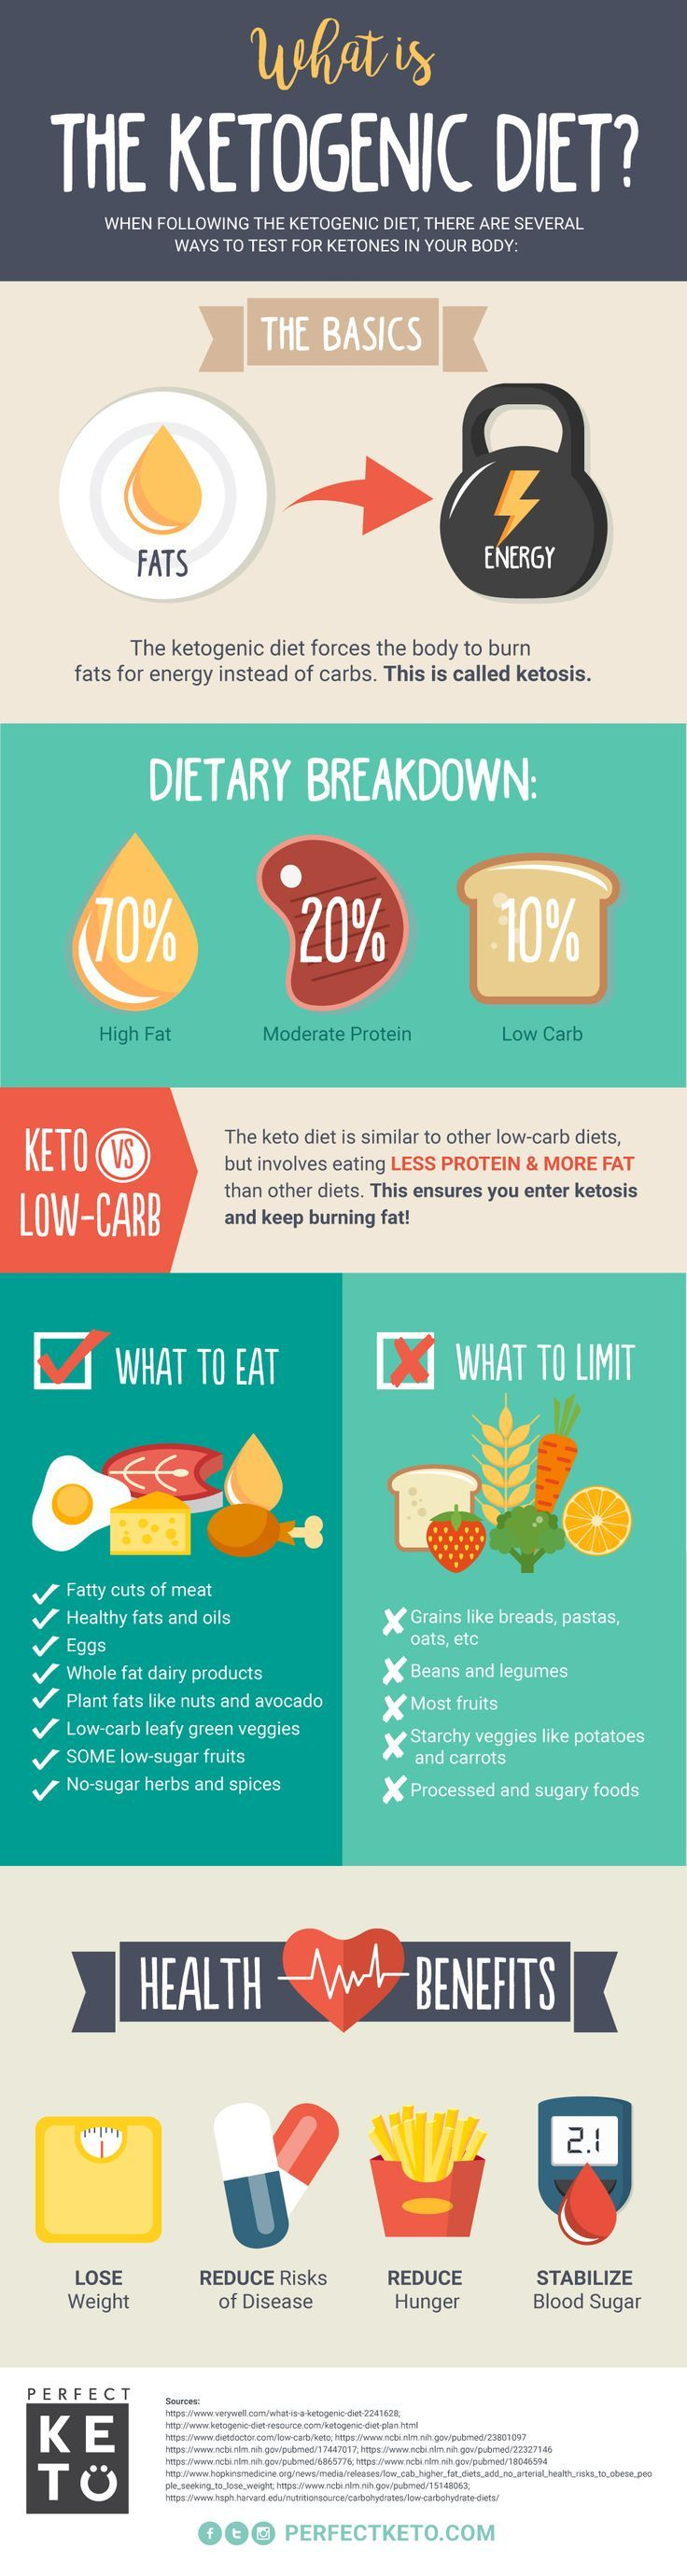 What is the Ketogenic Diet and how does it stand out from other kinds of low-car...